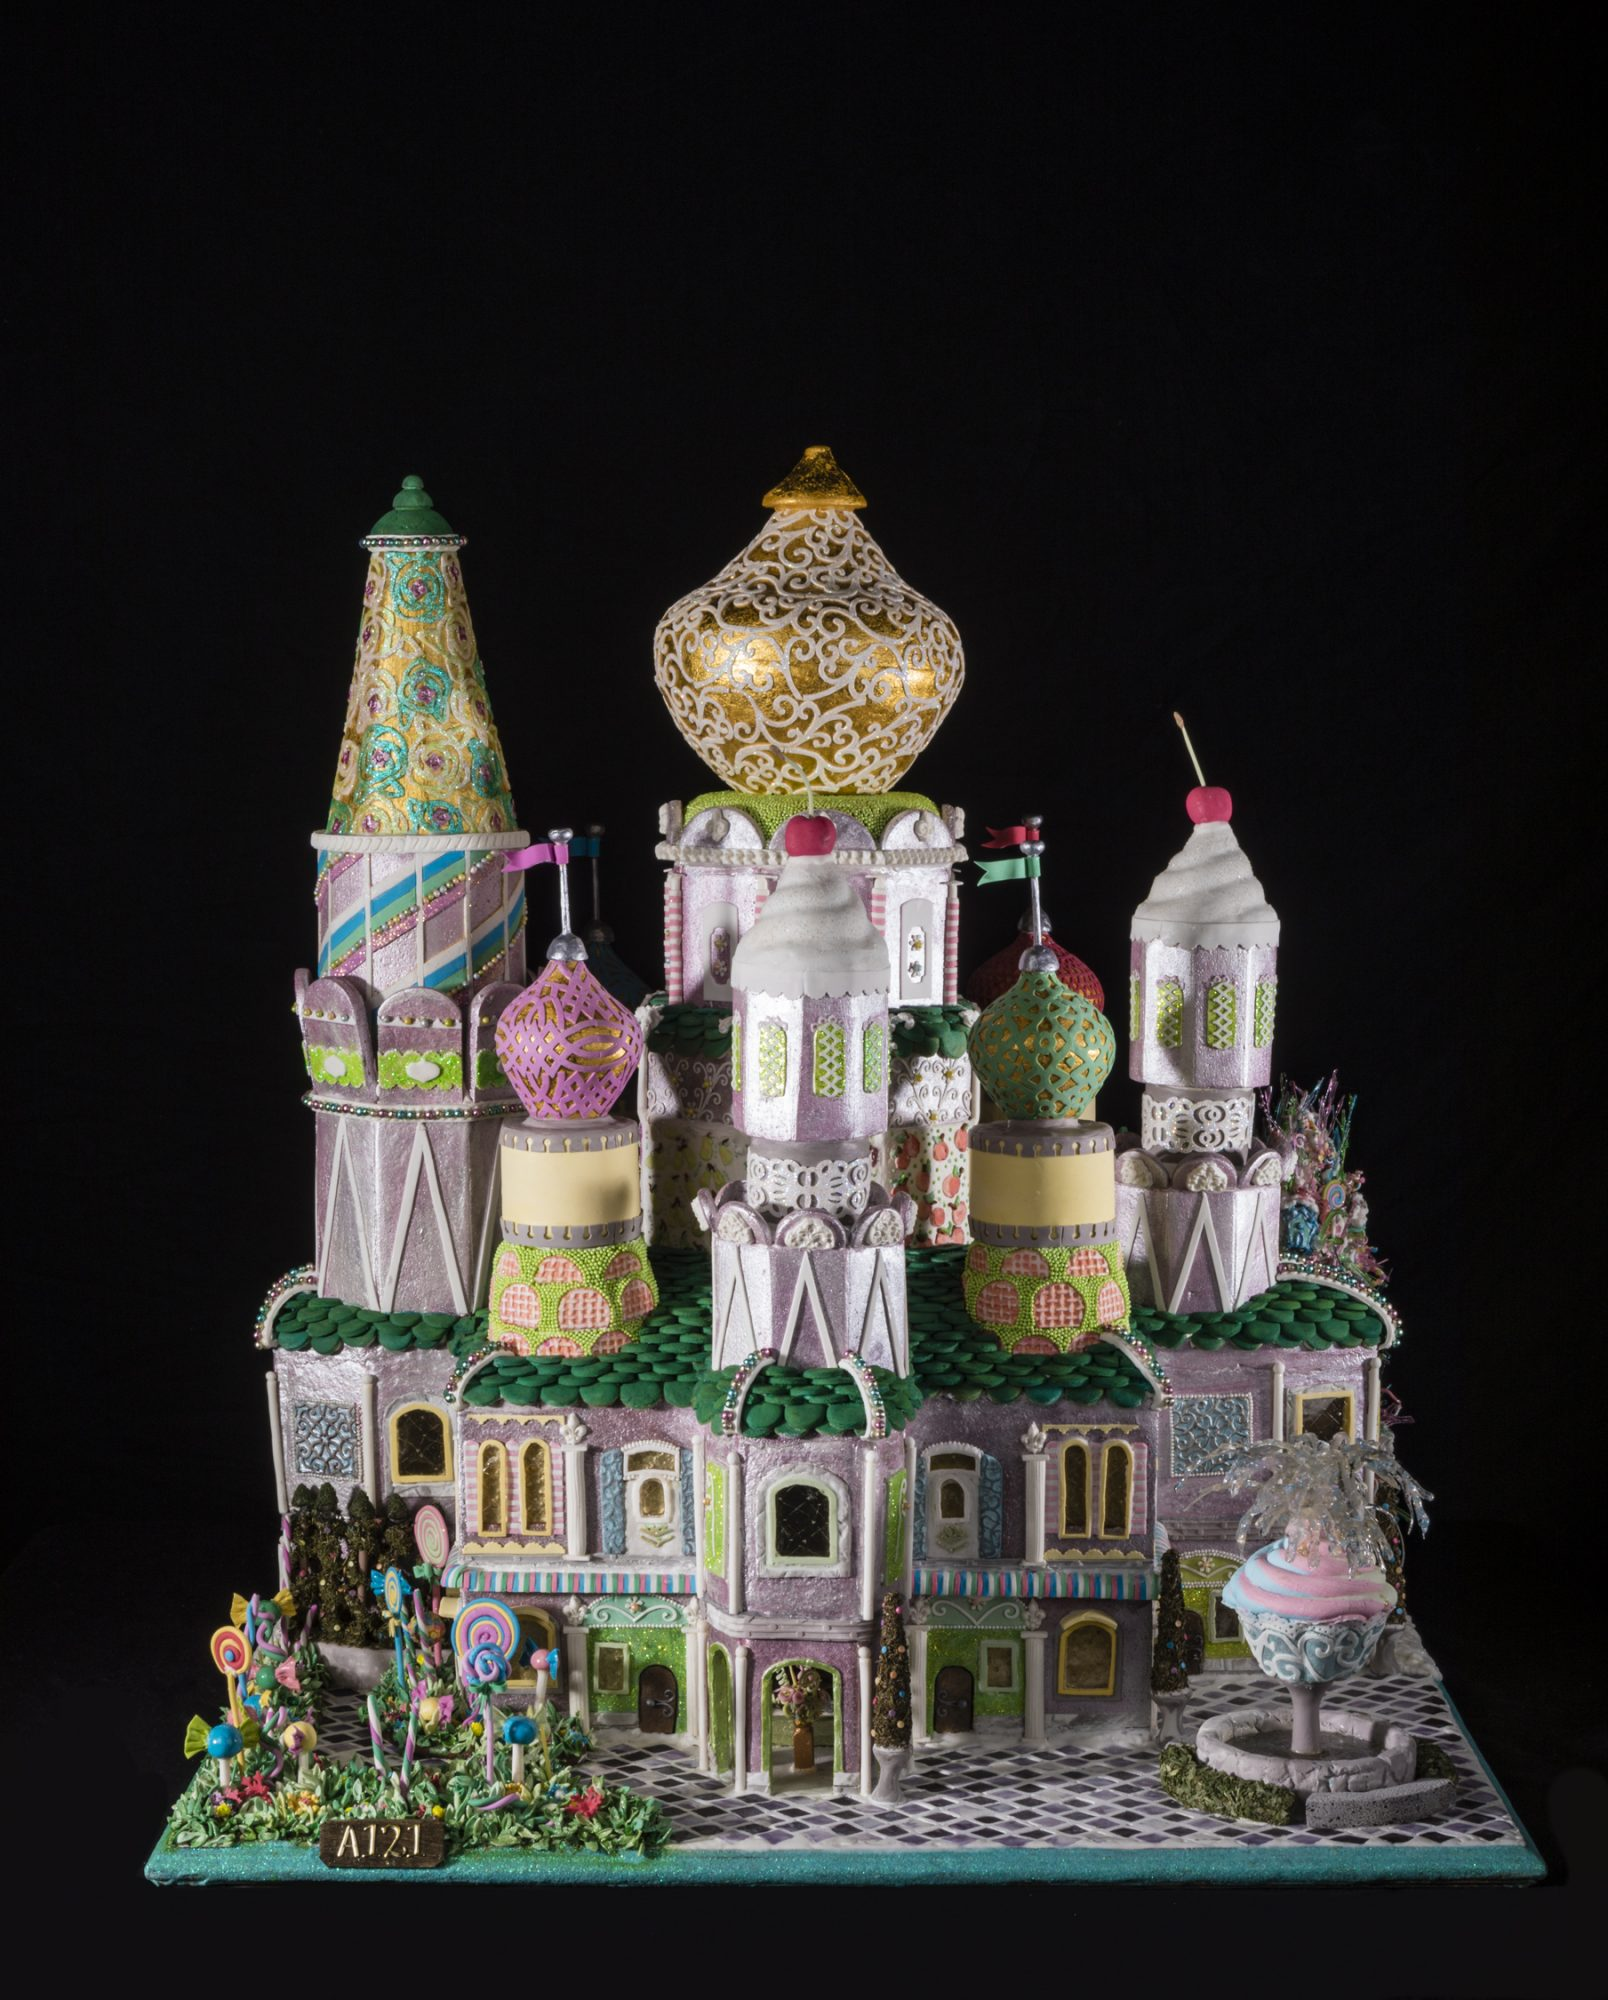 Kingdom of Konfection Gingerbread House Competition